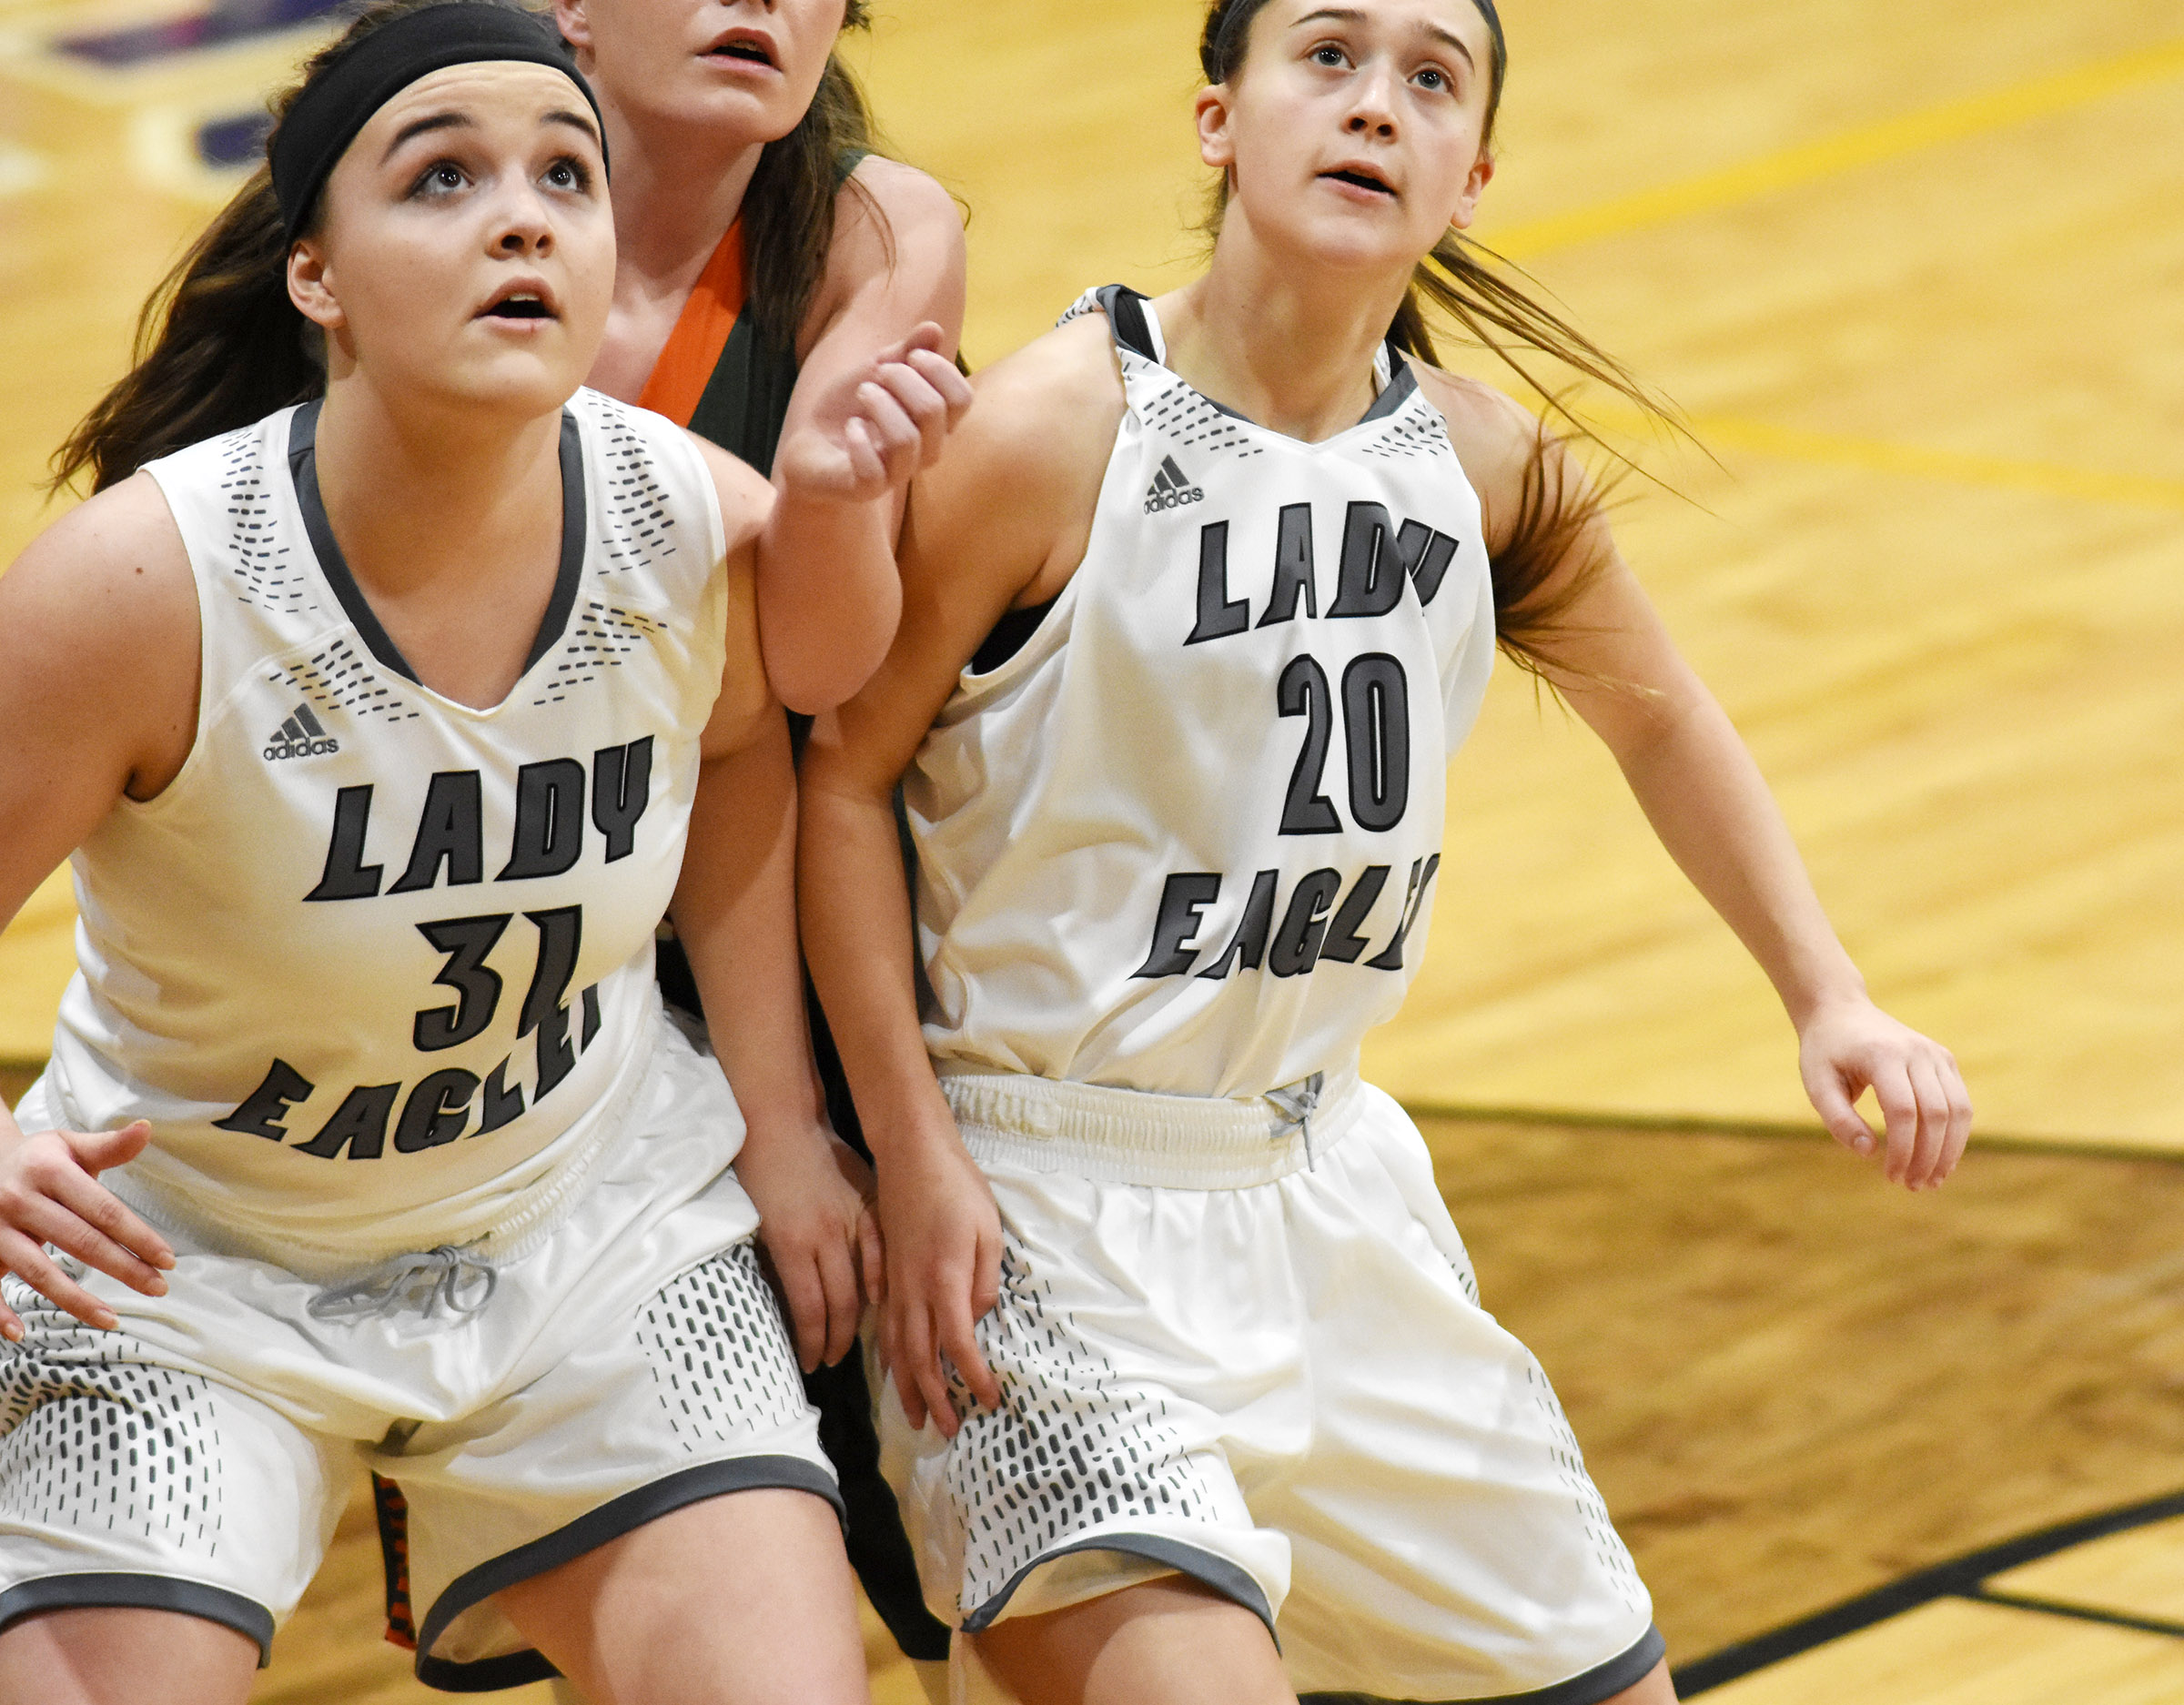 CHS freshman Kenzi Forbis, at left, and sophomore Bailey Thompson look for a rebound.